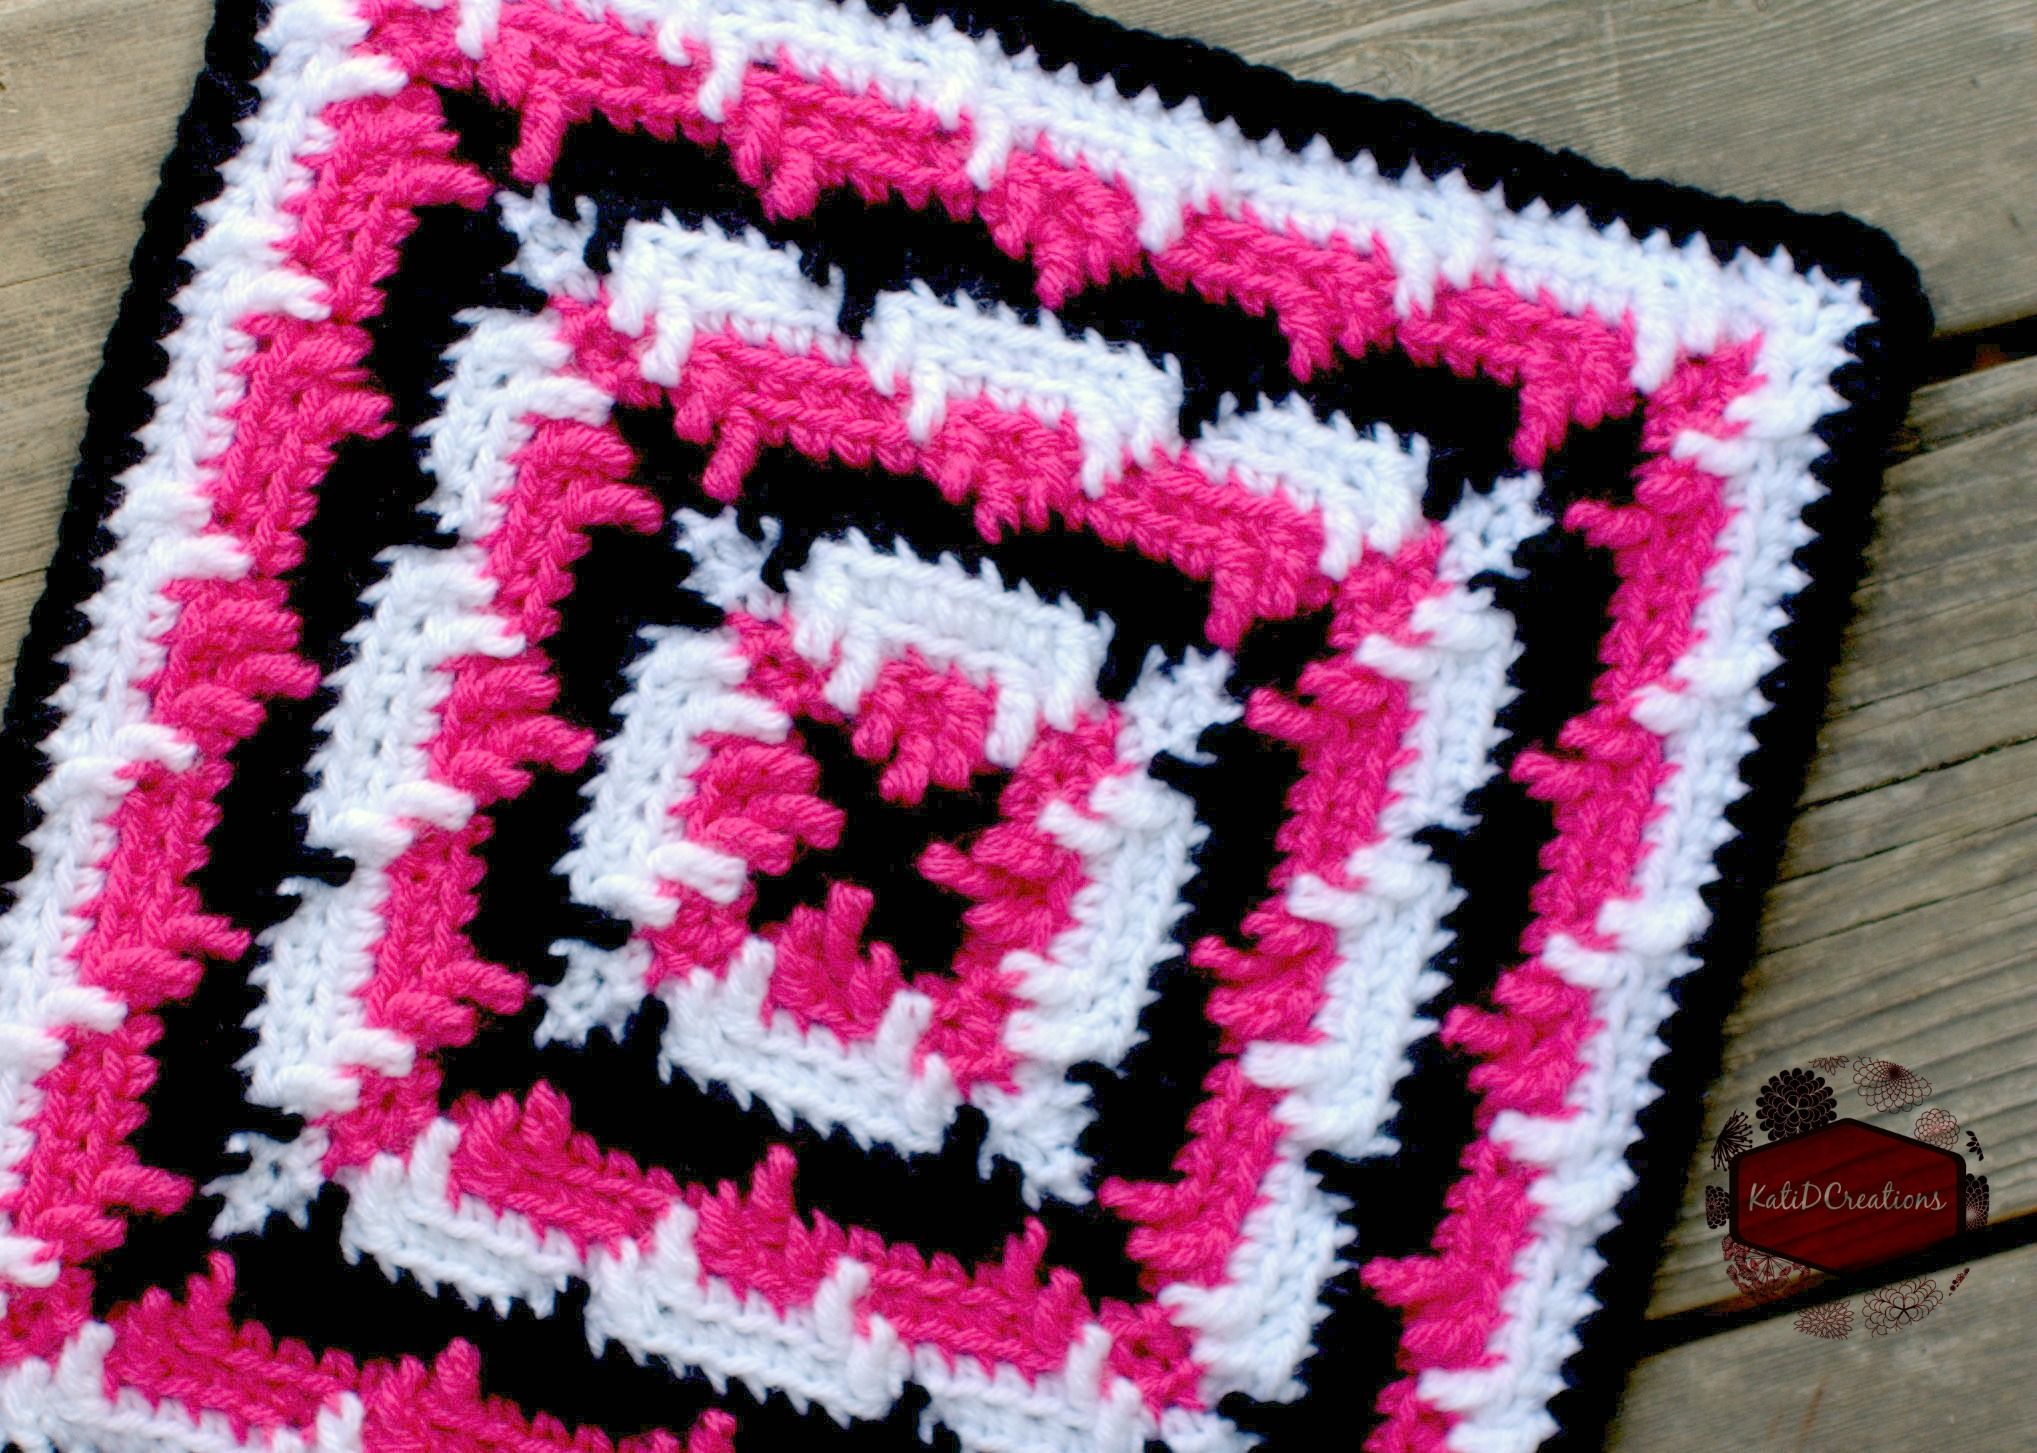 Squared Ripples - KatiDCreations | Knit & Crochet Afghans & Squares ...